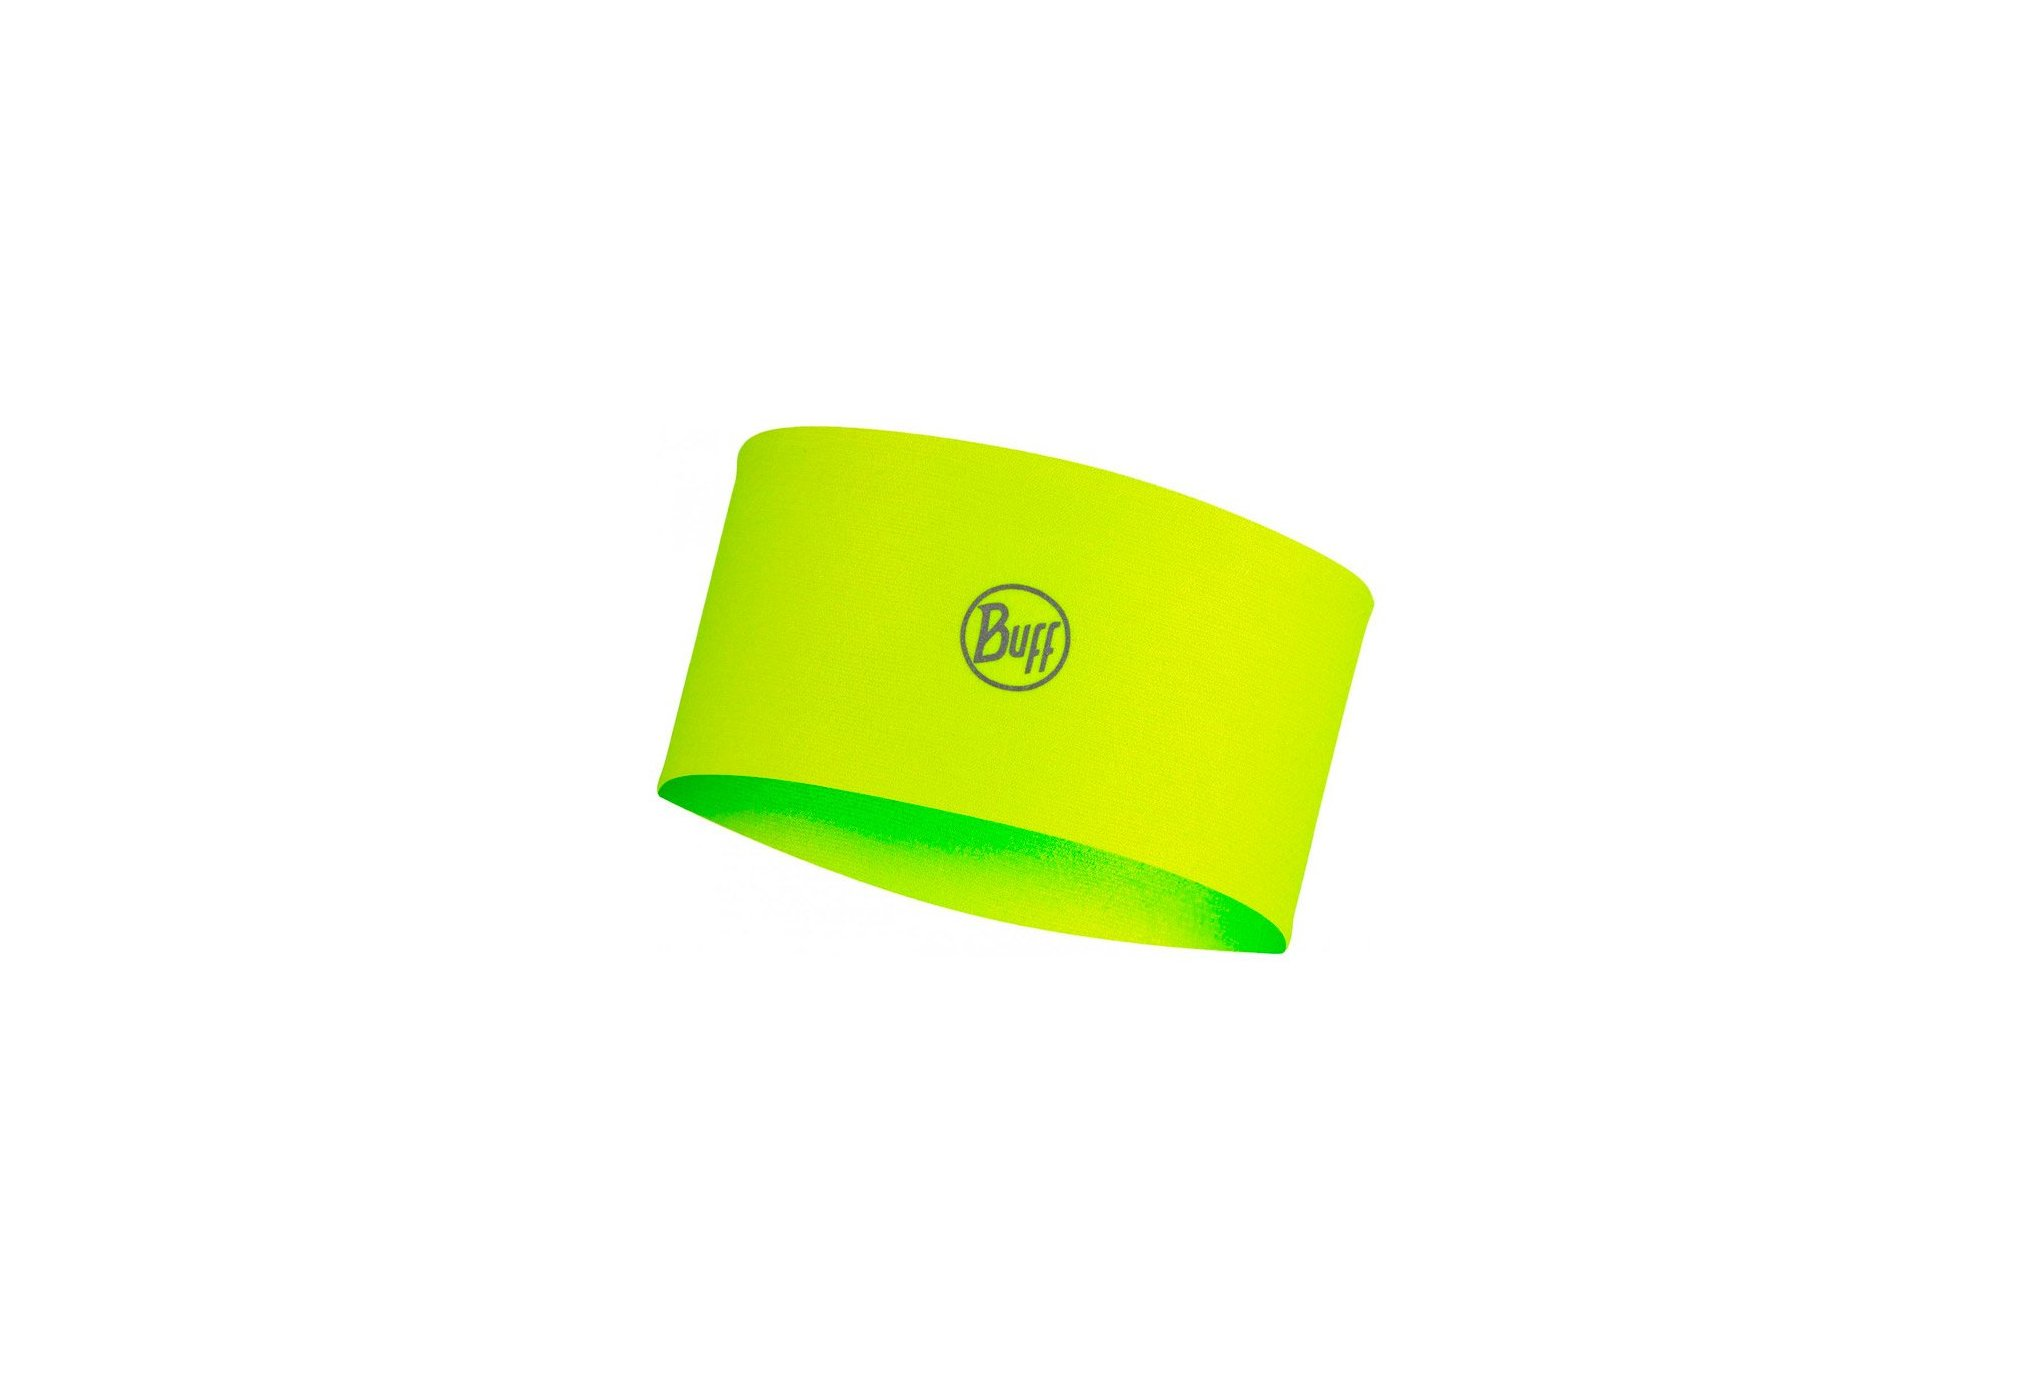 Buff Coolnet UV+ Solid Solid Yellow Fluor Casquettes / bandeaux